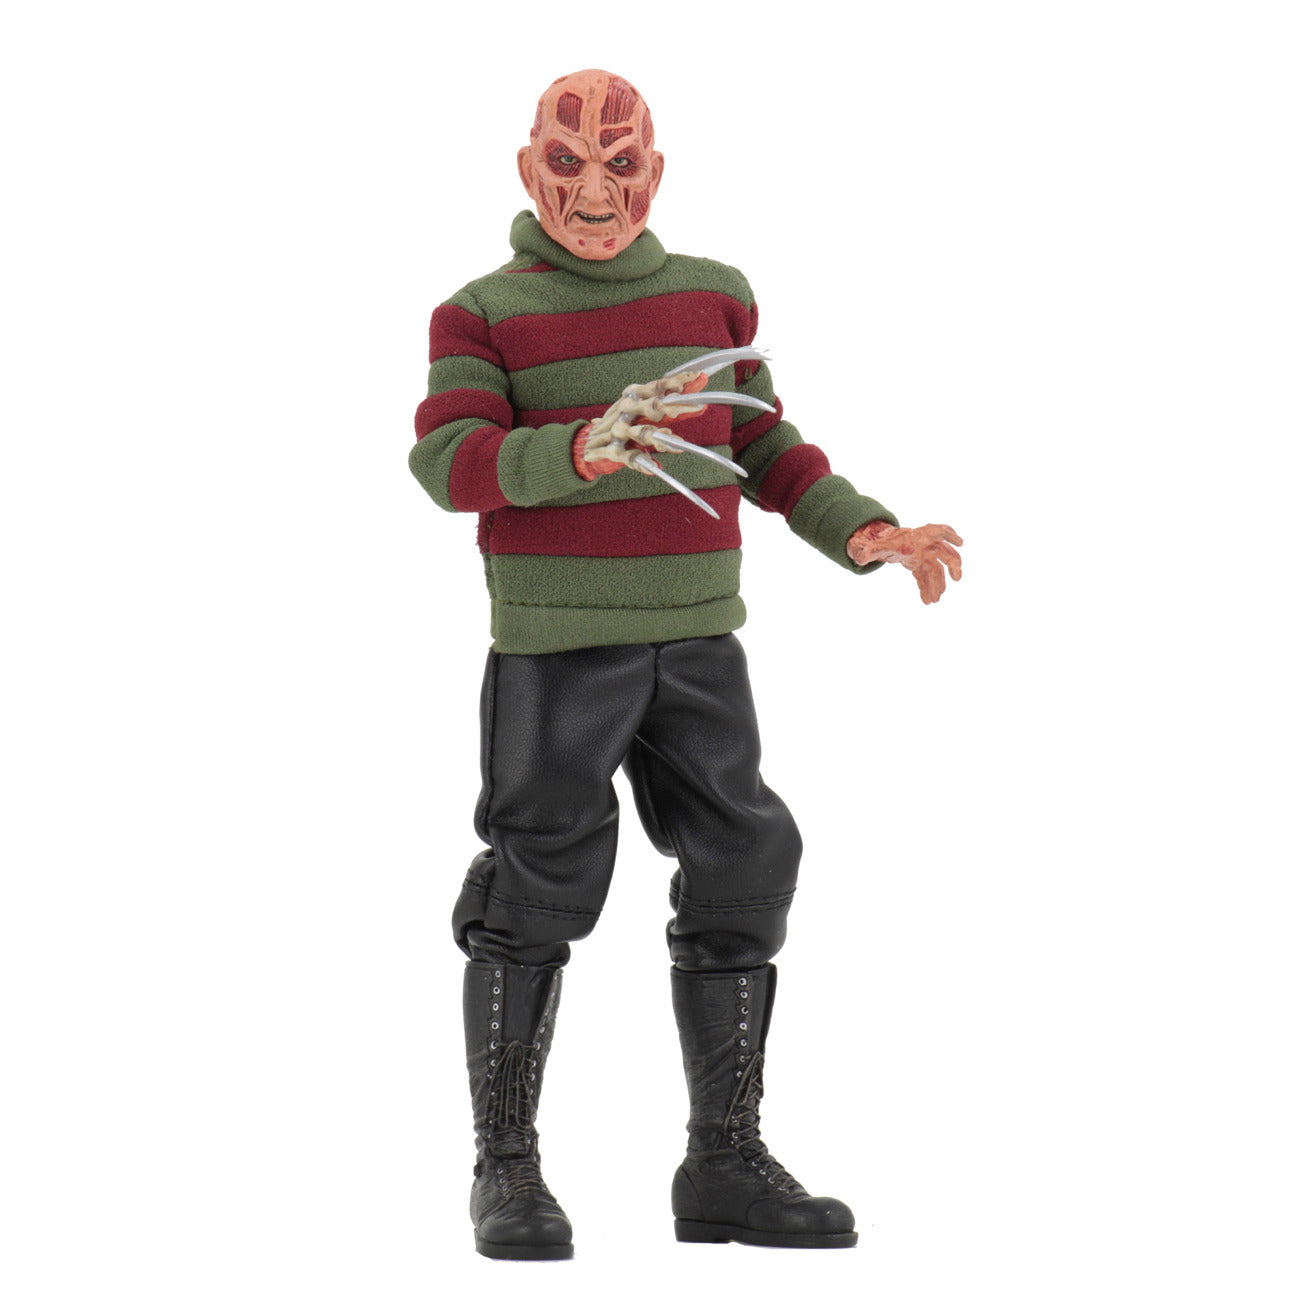 Nightmare on Elm Street Clothed 8 inch Action Figure